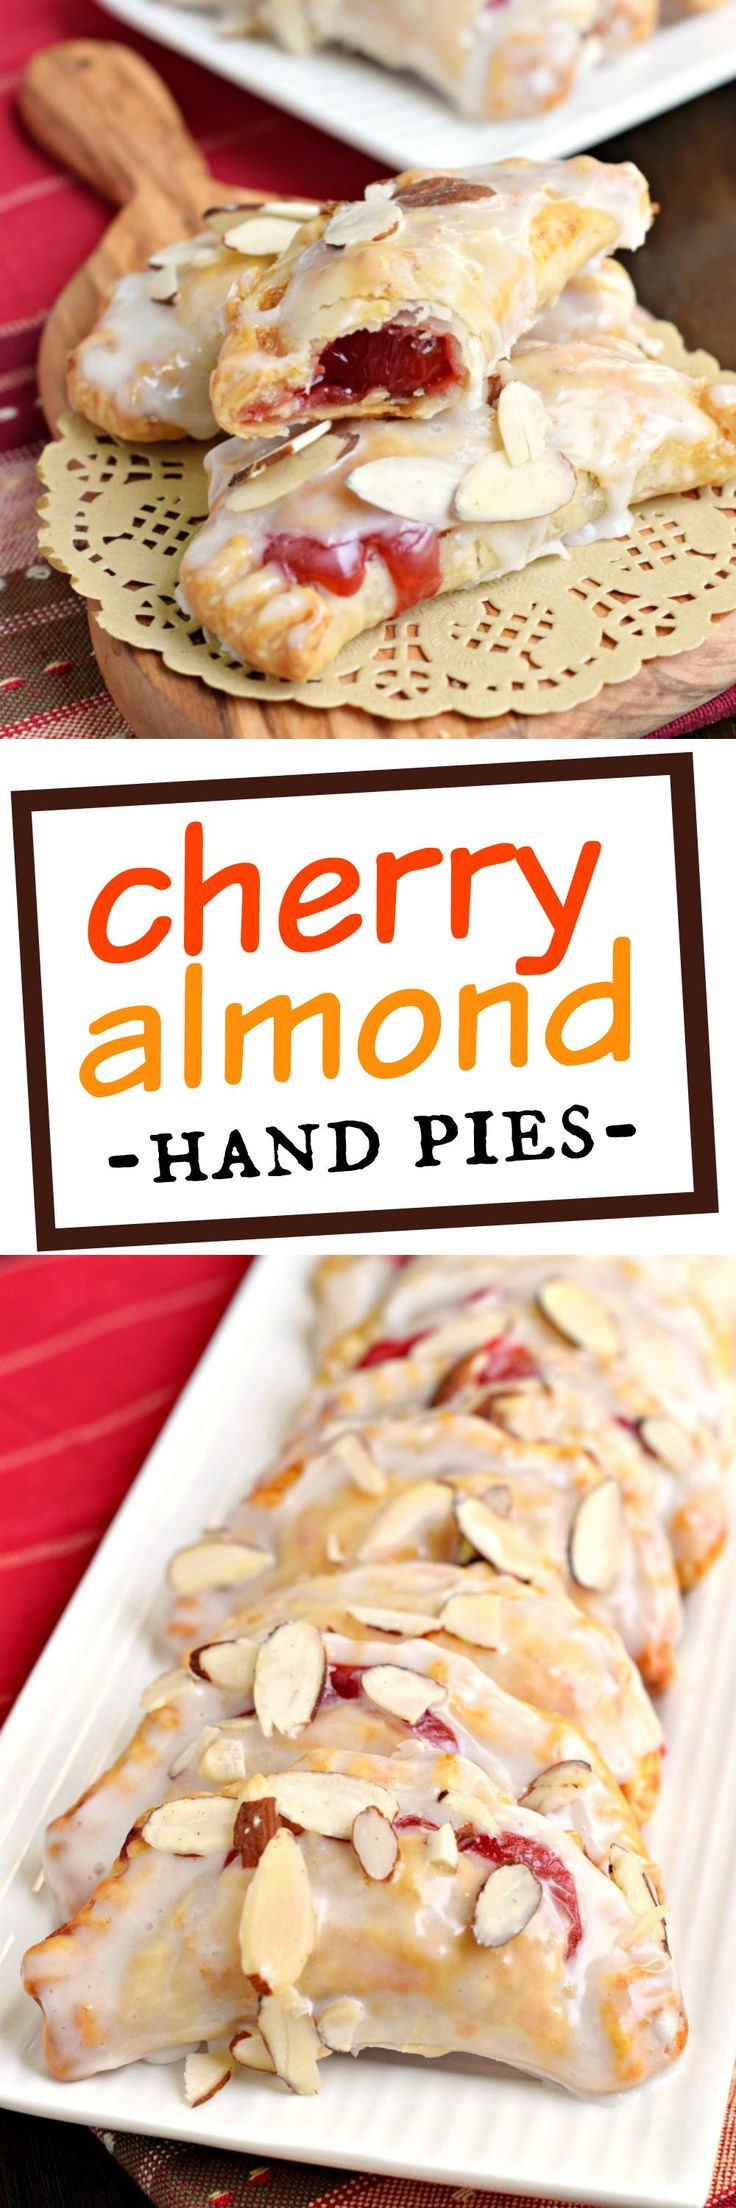 Easy, baked Cherry Almond Hand Pies! A flaky crust with a cherry almond pie filling, dipped in a sugary glaze and topped with sliced almonds. The perfect dessert!